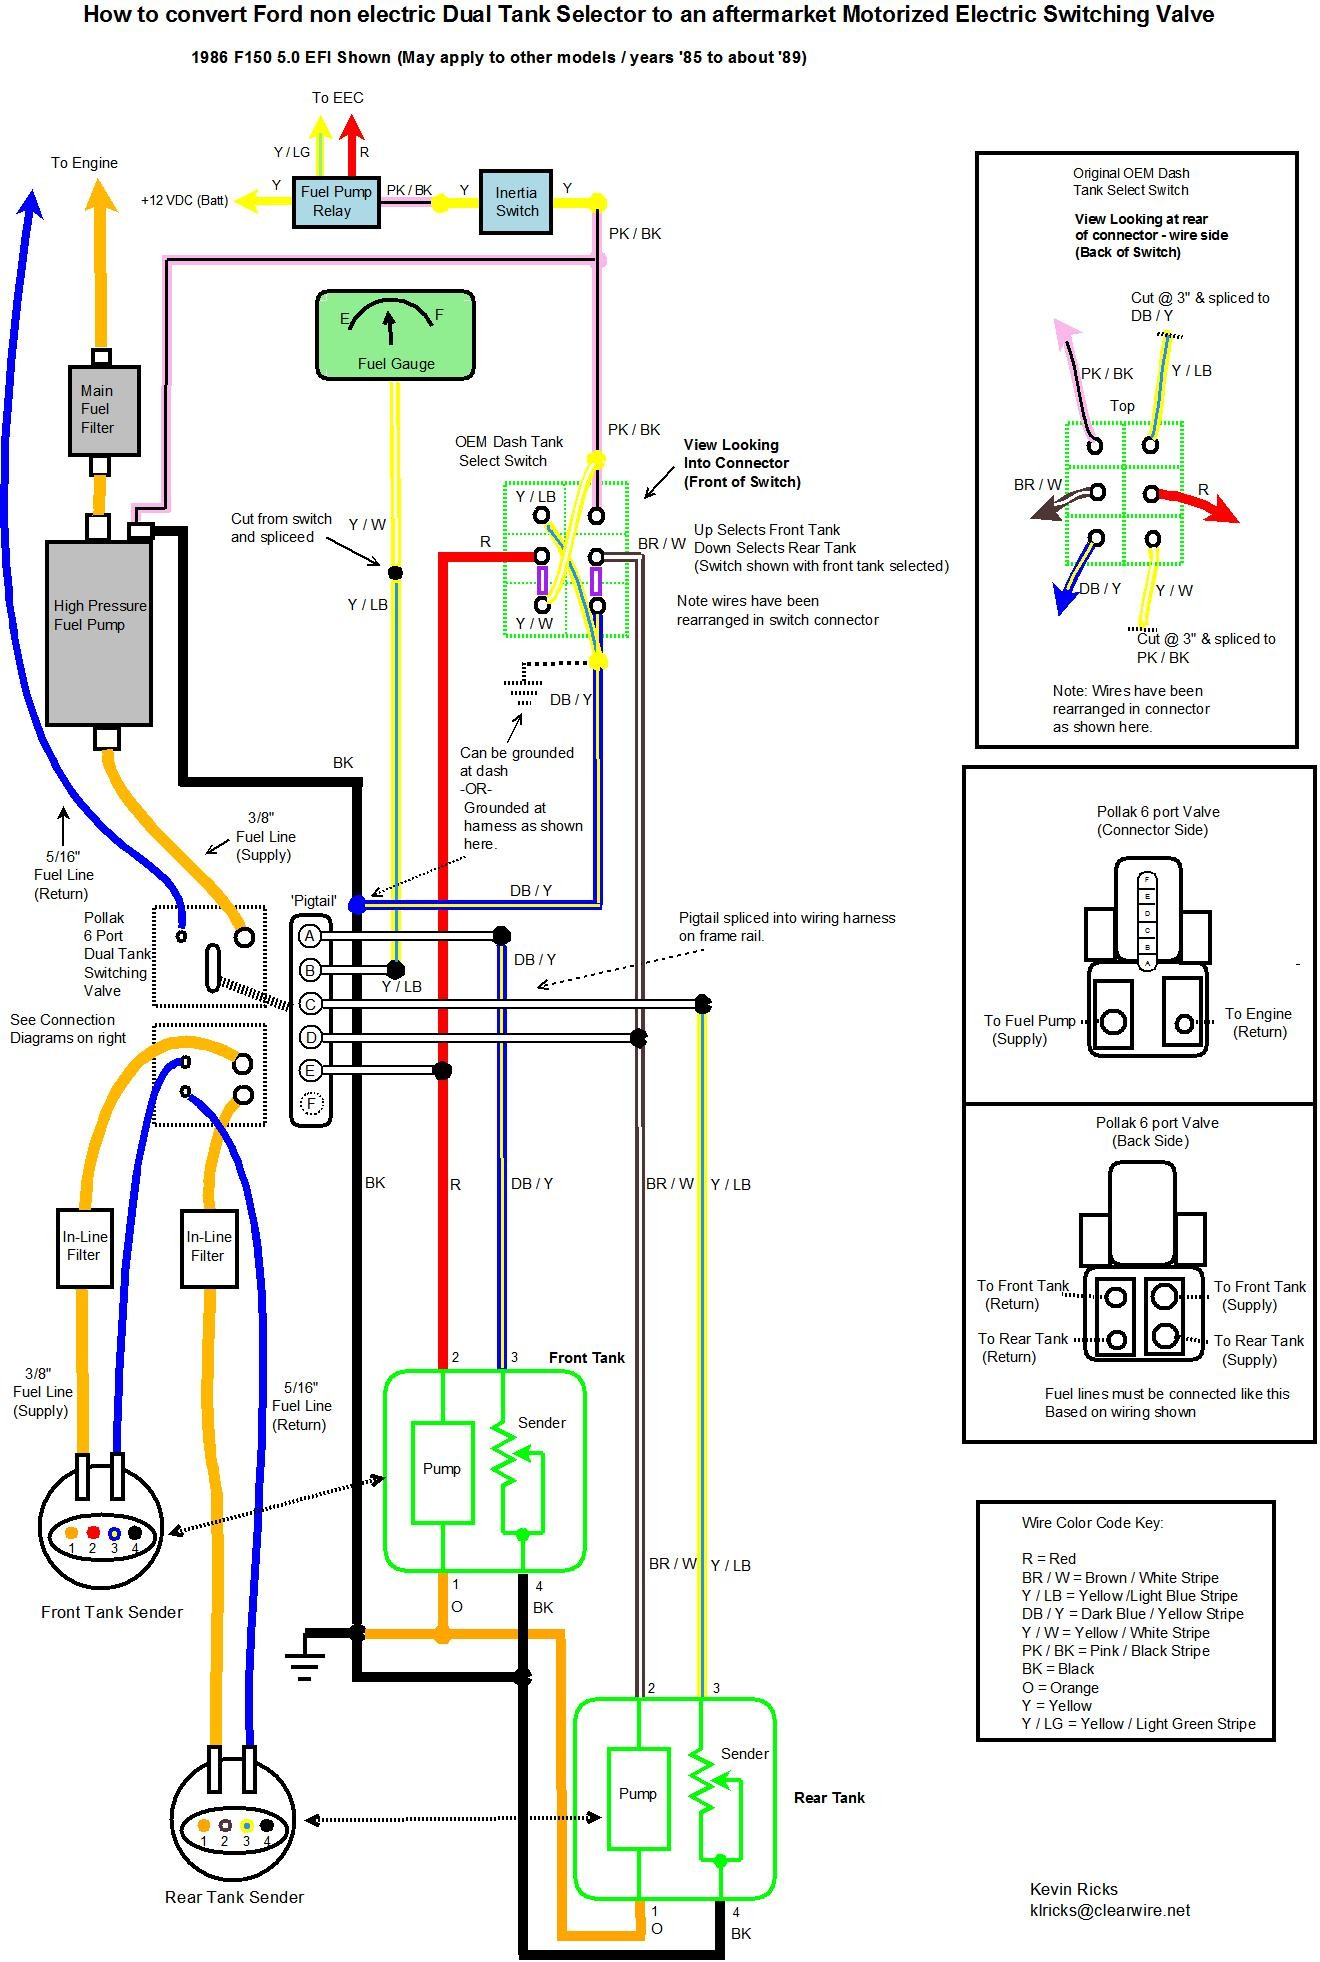 1988 Ford F 150 Fuel Tank Wiring - Schema Wiring Diagrams